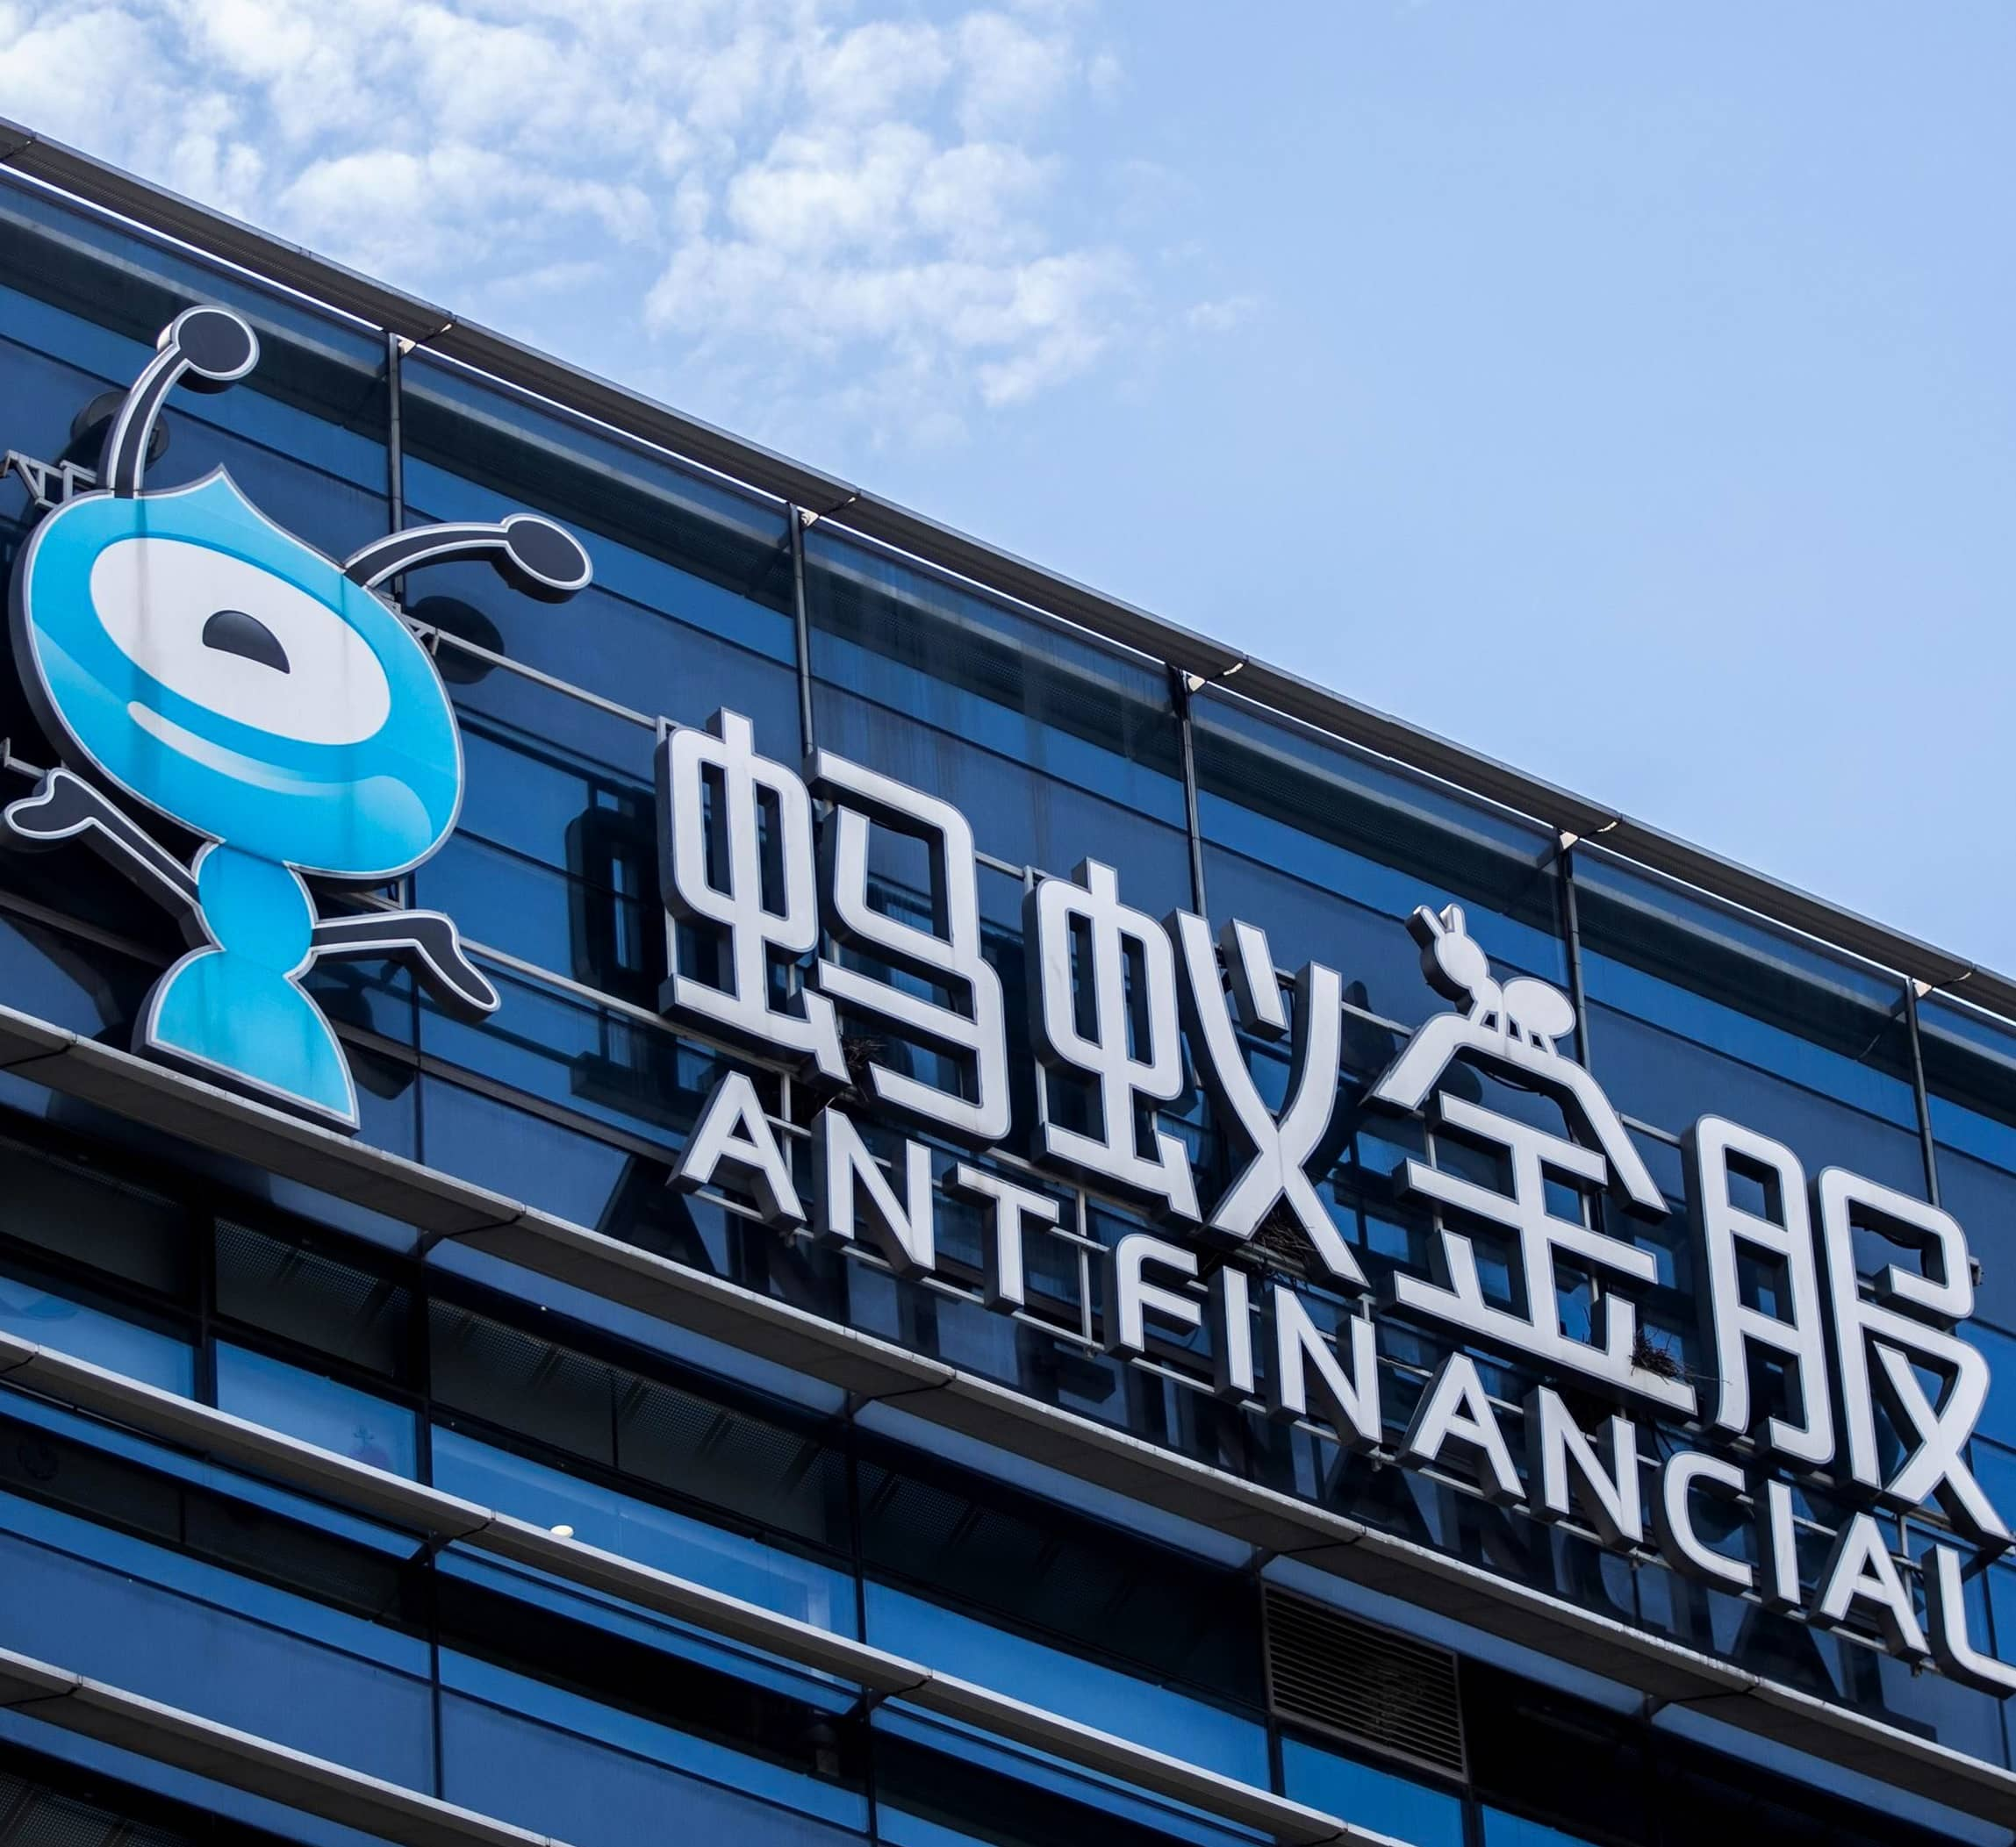 ALIBABA'S ANT GROUP FILES FOR IPO IN HONG KONG, SHANGHAI